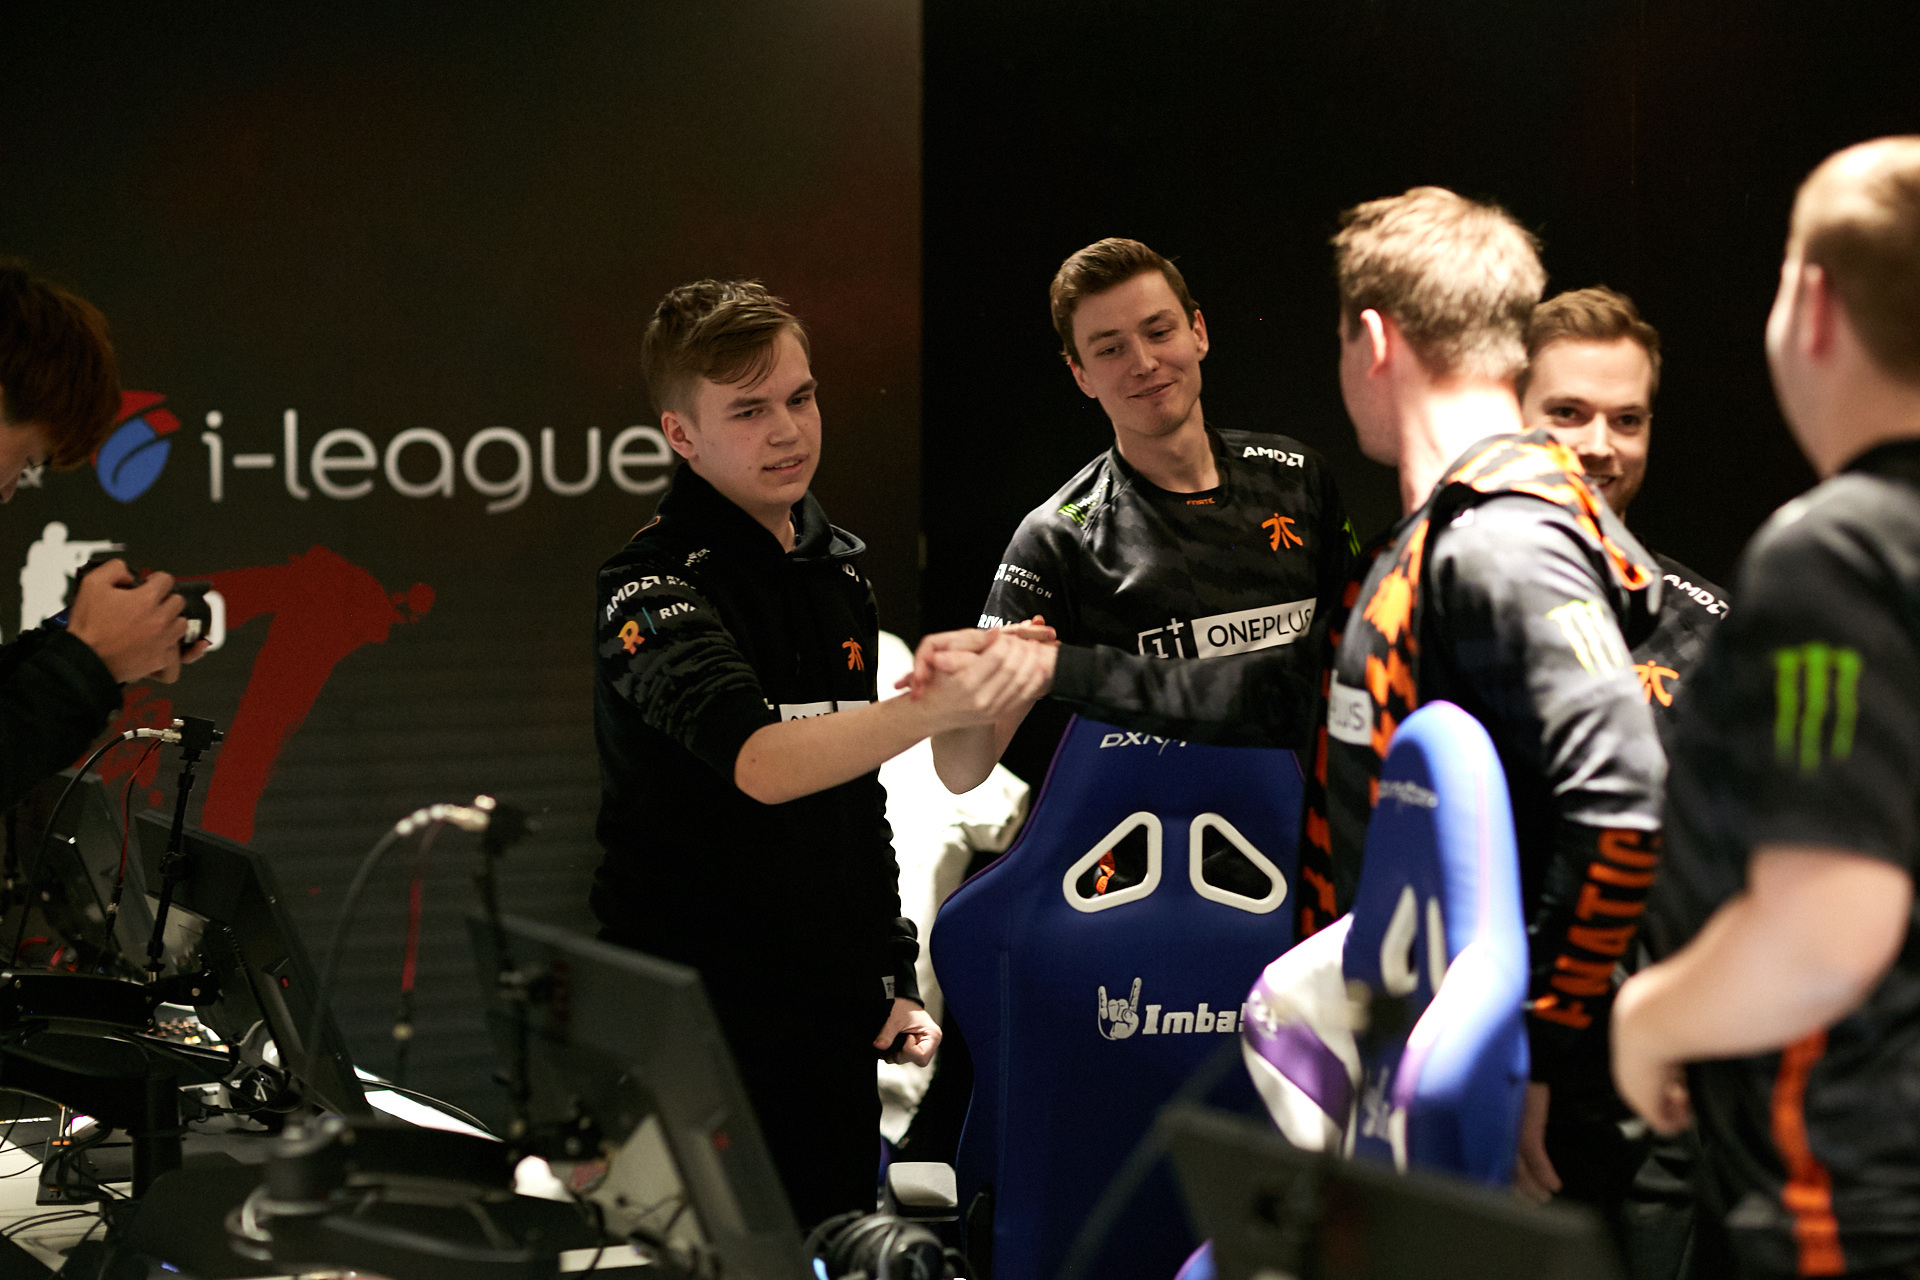 Fnatic, Vitality, FaZe remain undefeated on Day Two of StarSeries i-League S7